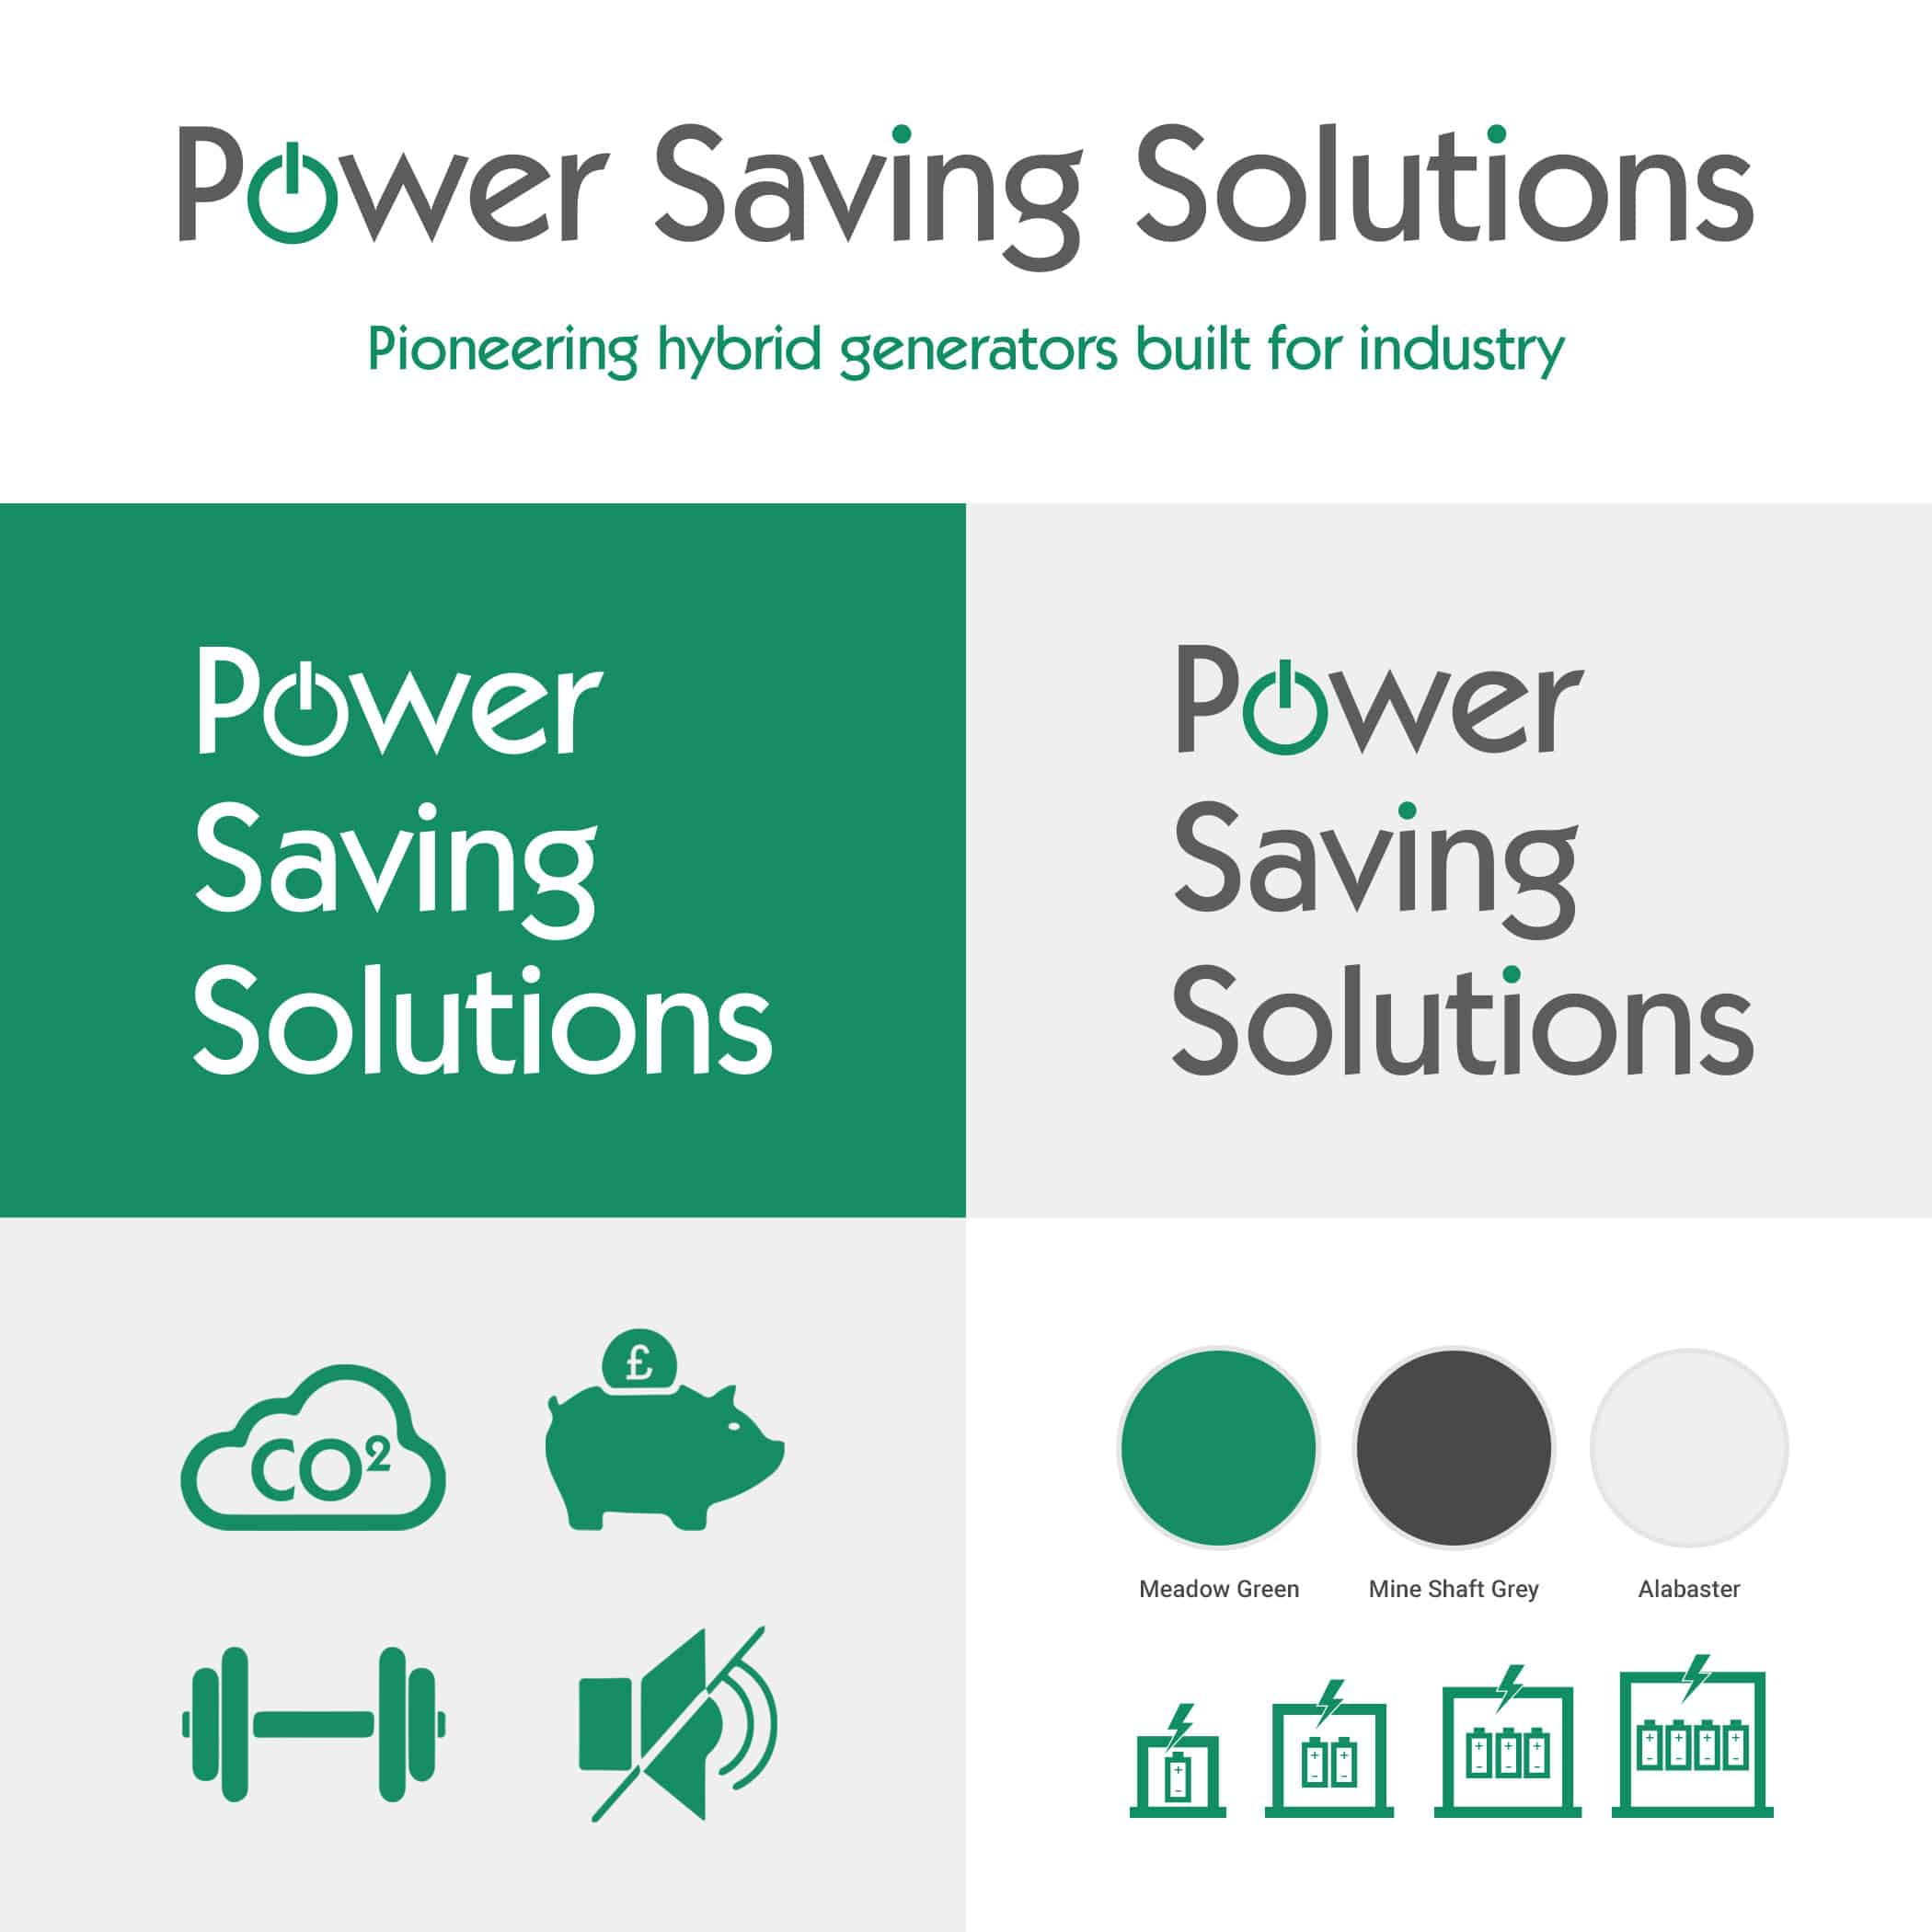 Power Saving Solutions branding and logo